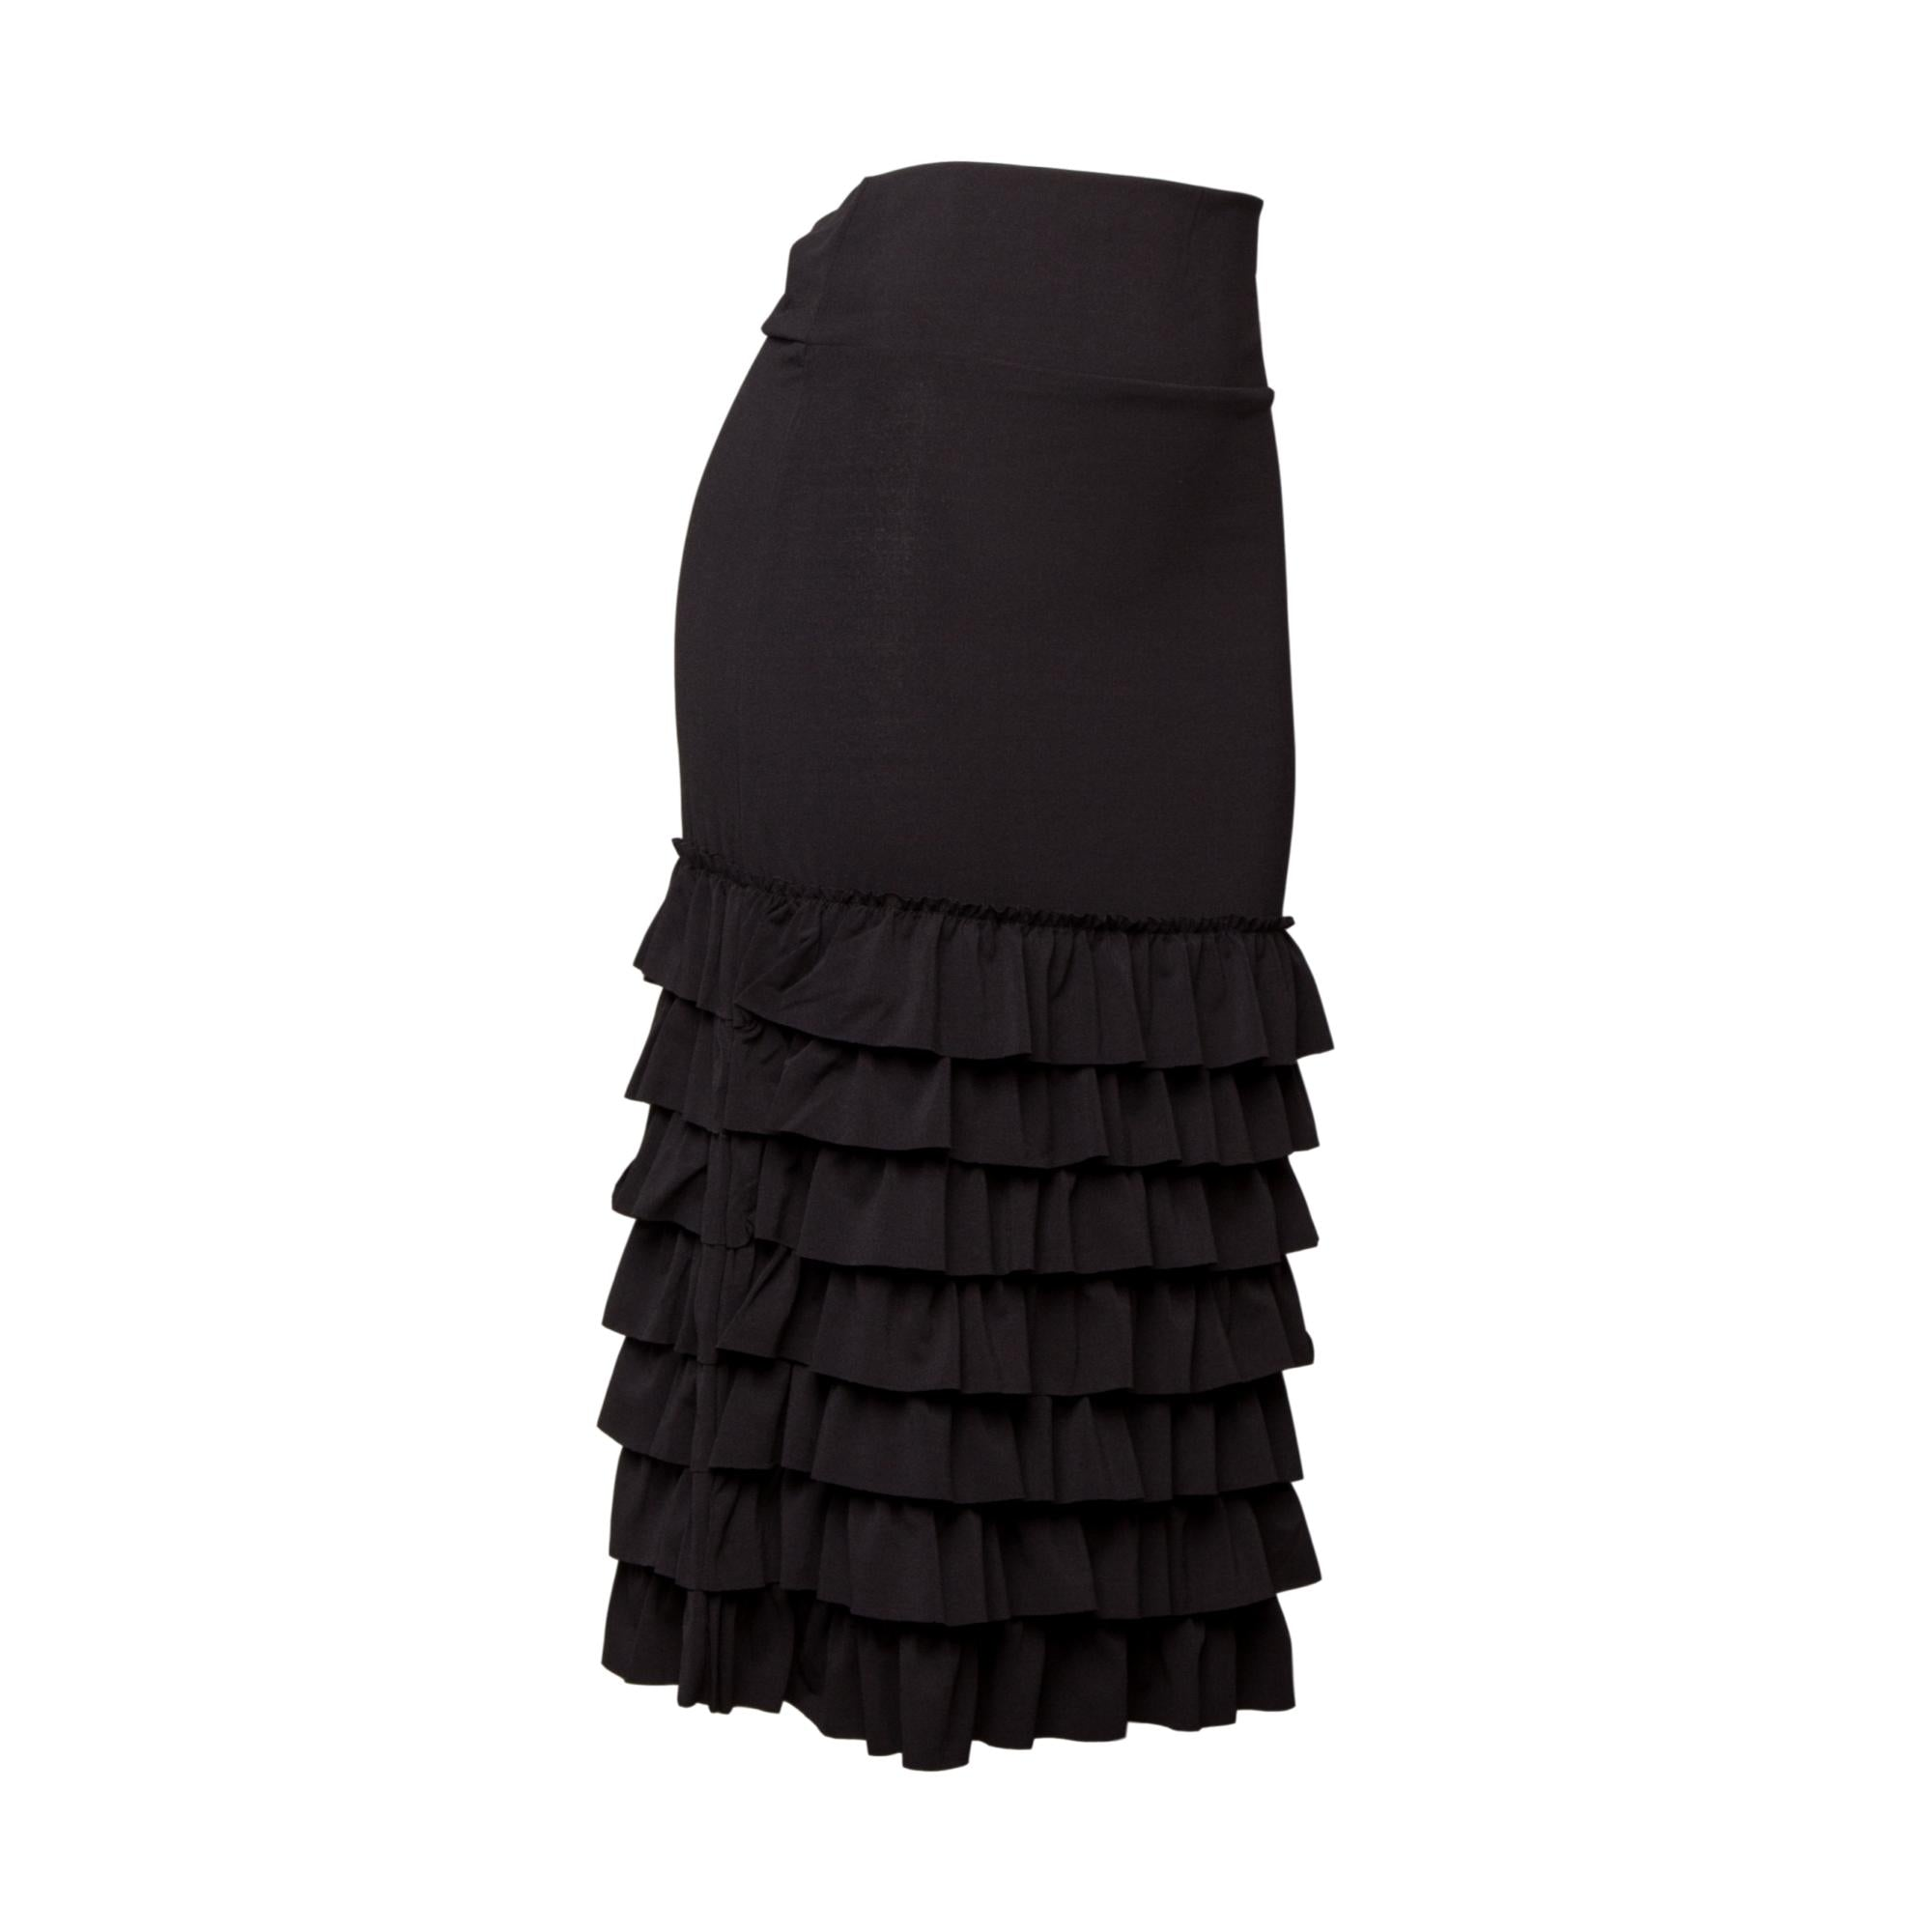 Bring on the Frill Half Slip | ultra long | black, skirt extenders, Peekaboo Chic | Modest Layering Apparel for women